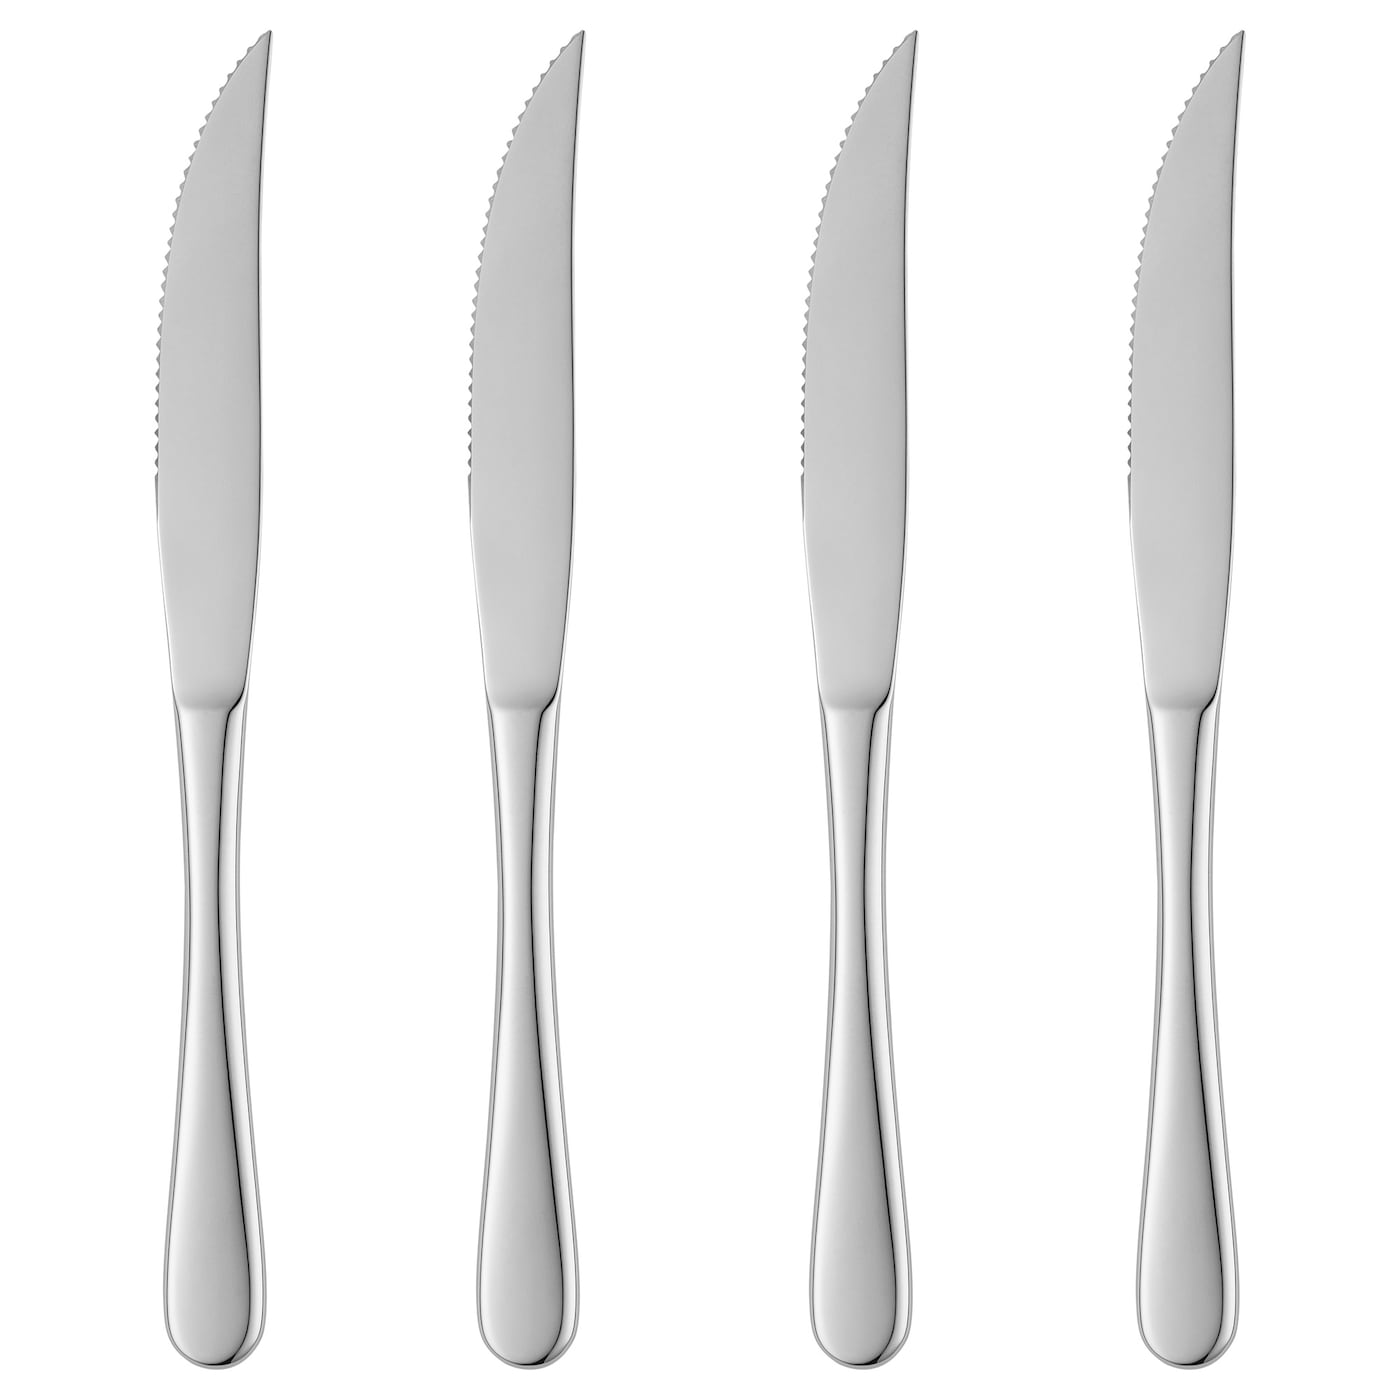 IKEA MARTORP 4-piece knife set Made from stainless steel that is durable and easy to clean.